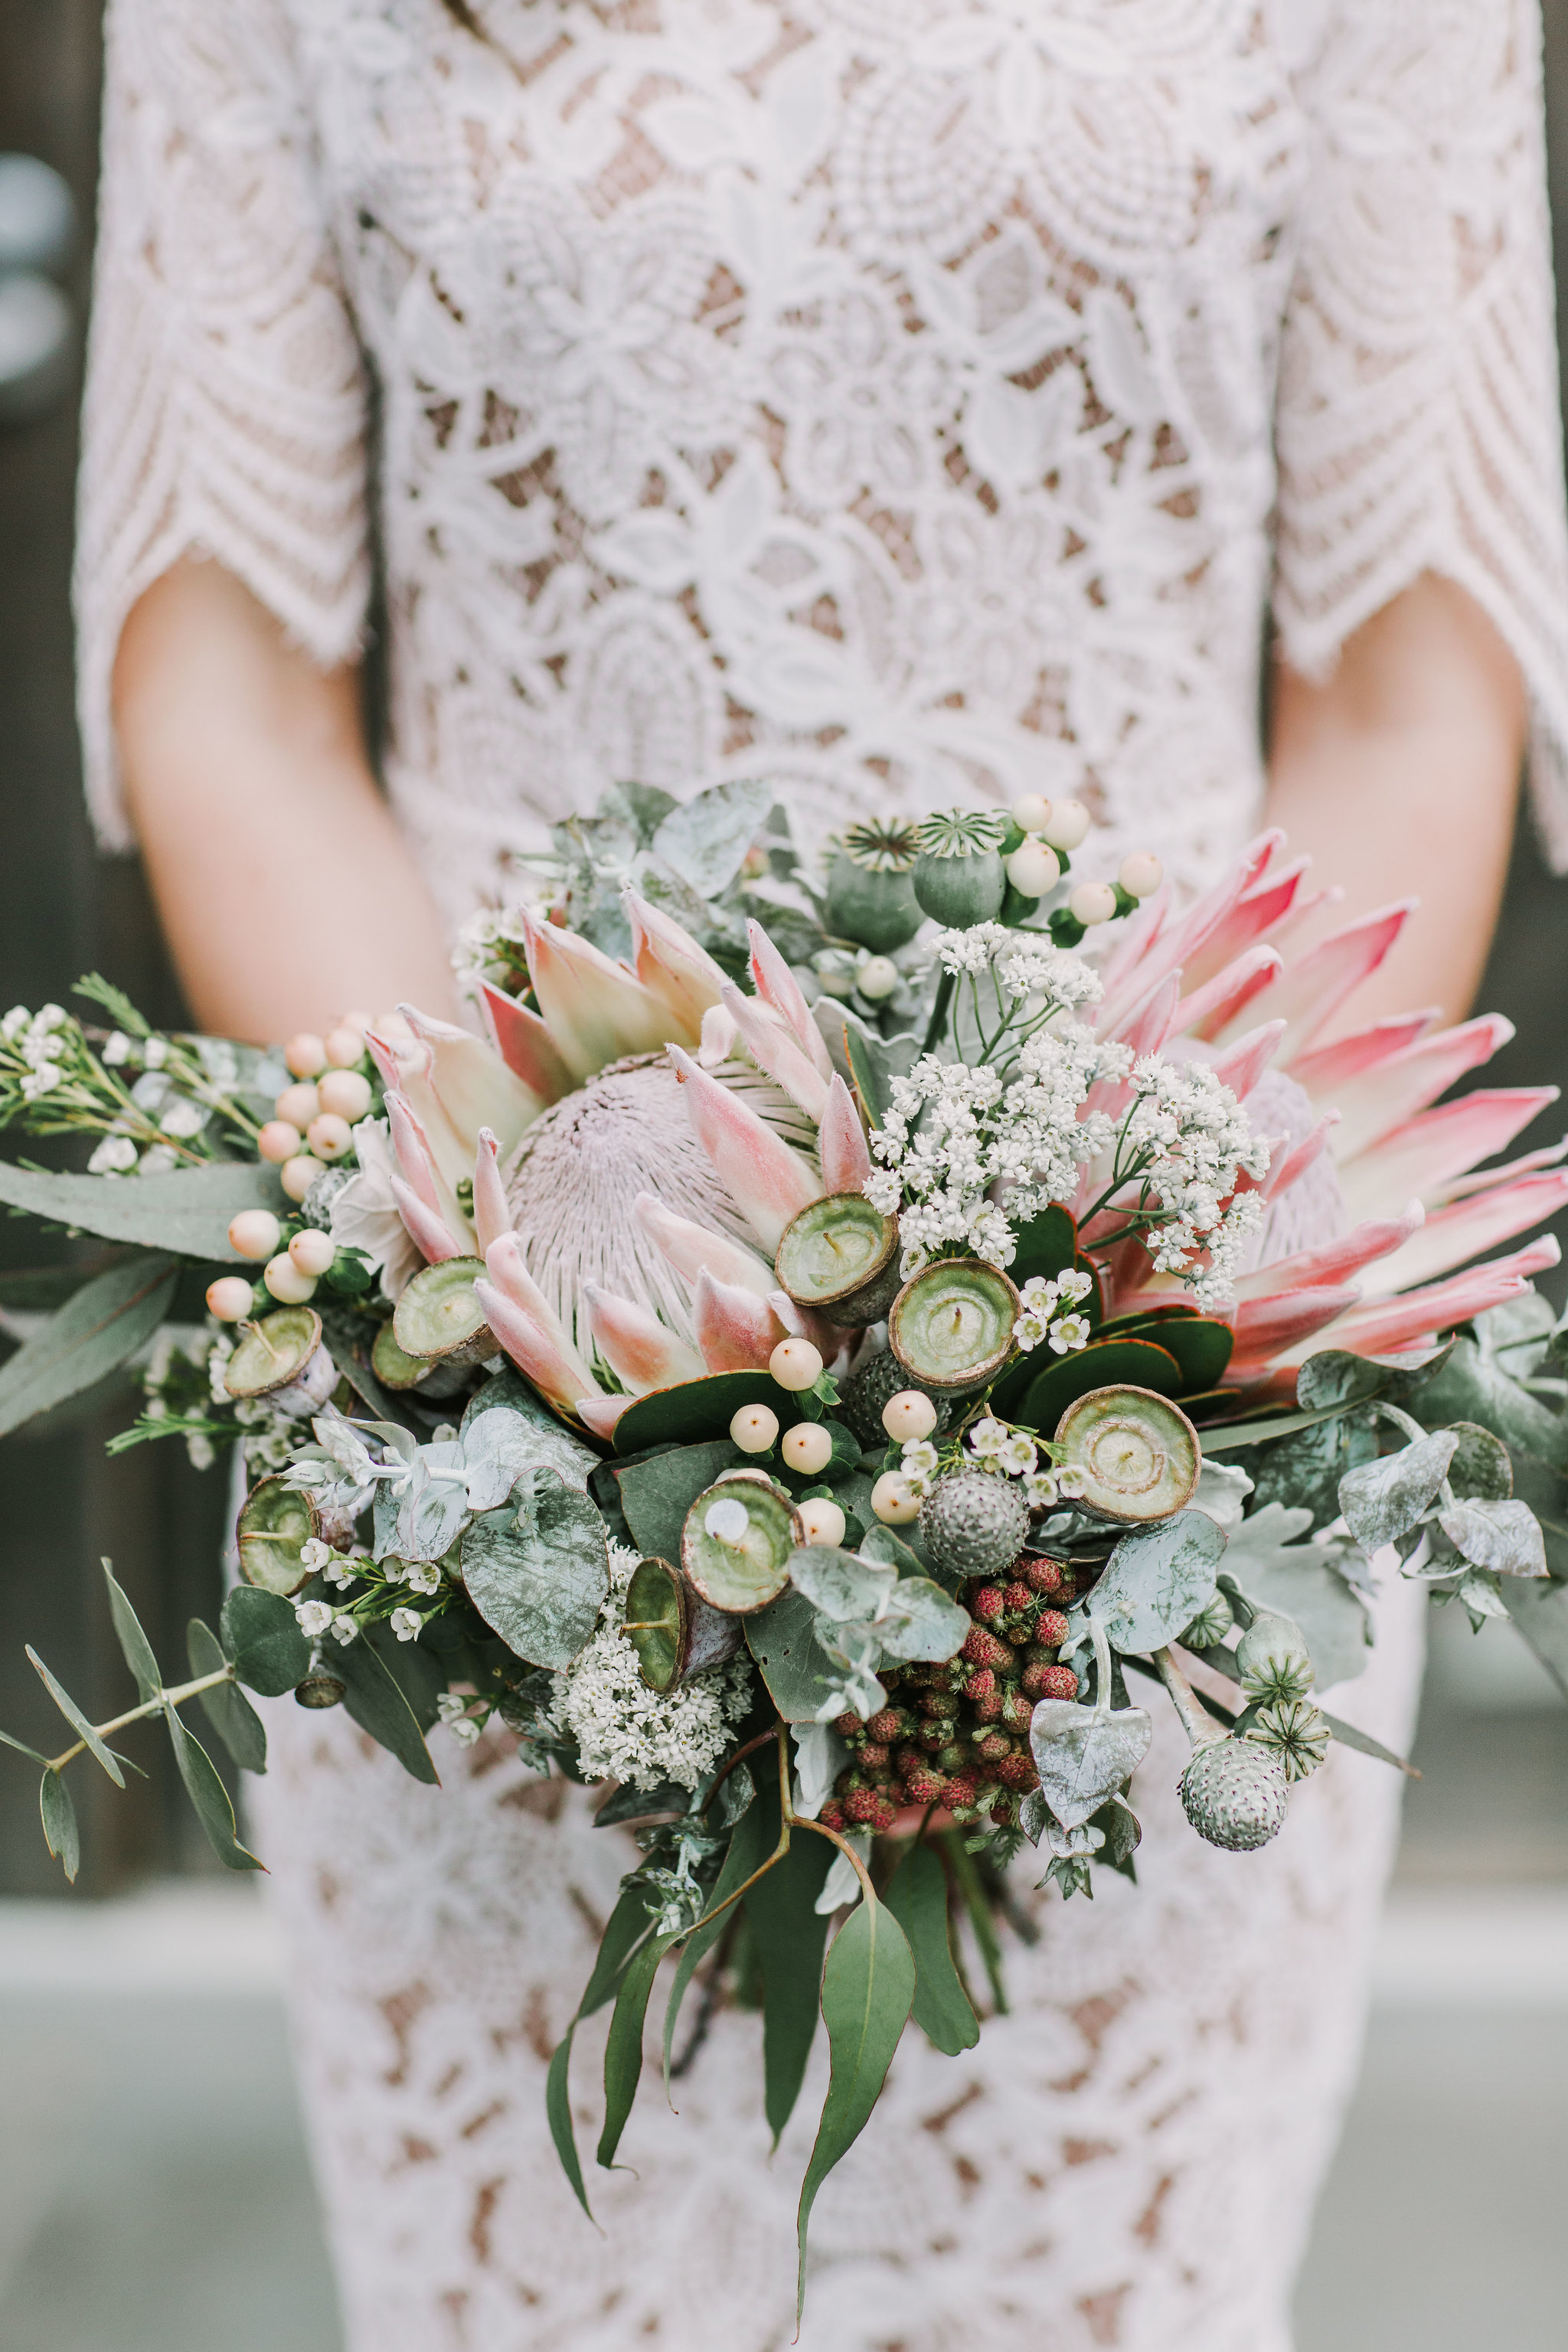 Pay homage to Australian botanics with a native bouquet. Image credit:  Anitra Wells Photography.